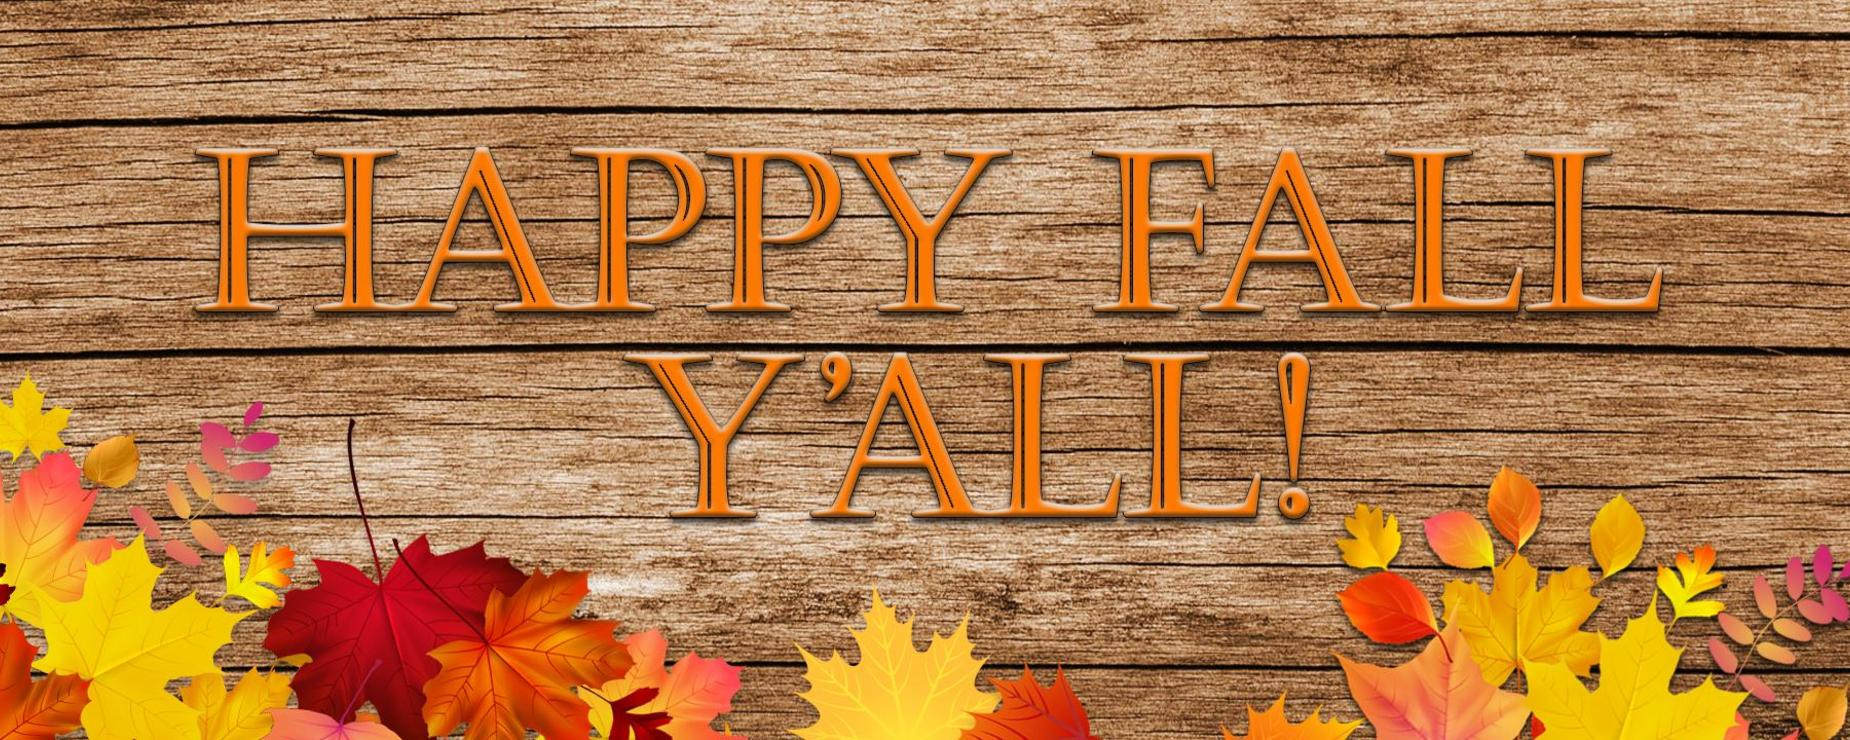 Happy Fall! written on wood background with leaves..